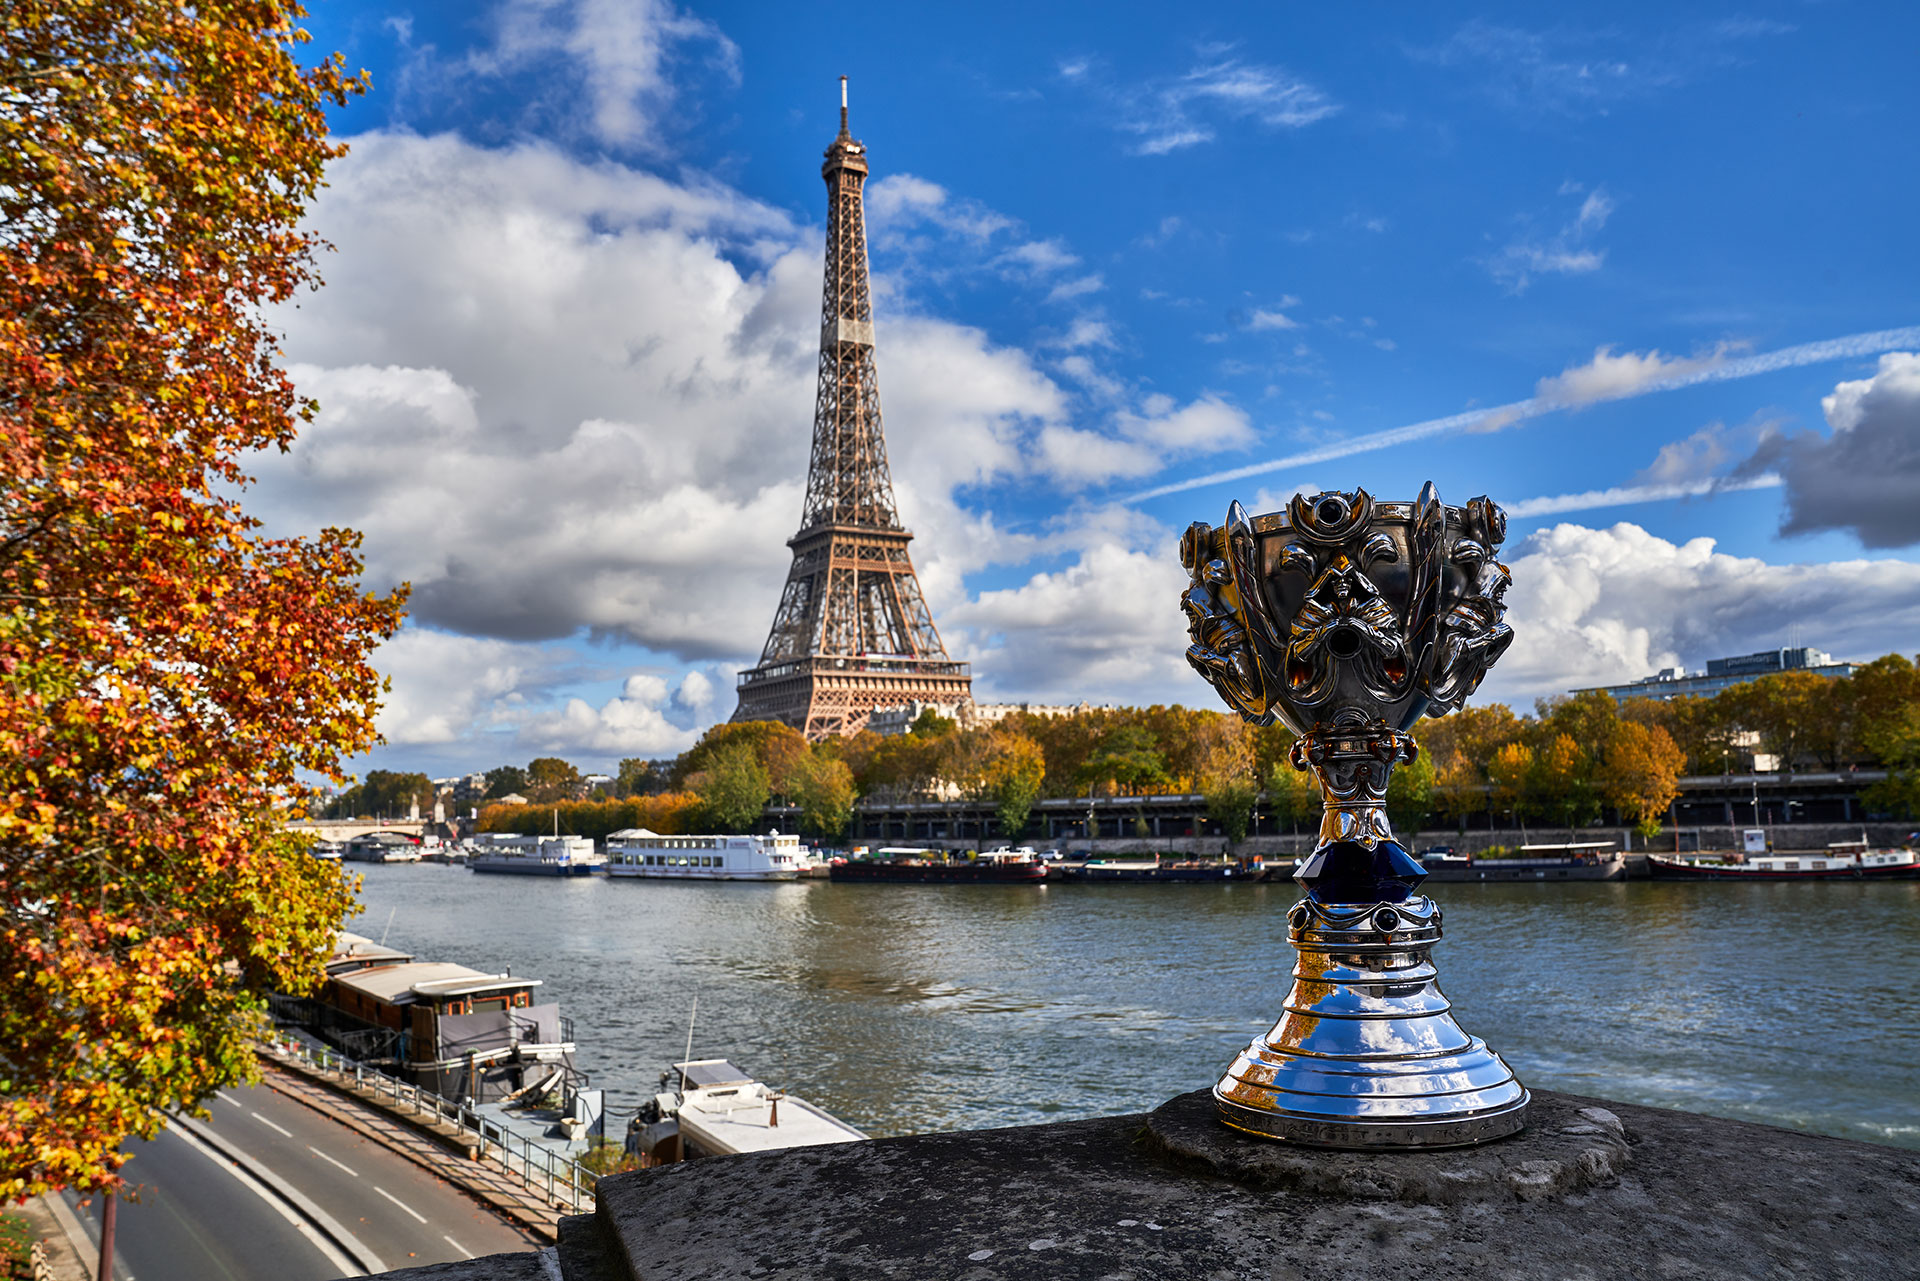 SLIDESHOW-IMAGE-3---Eiffel-Tower.jpg - 636.47 kb